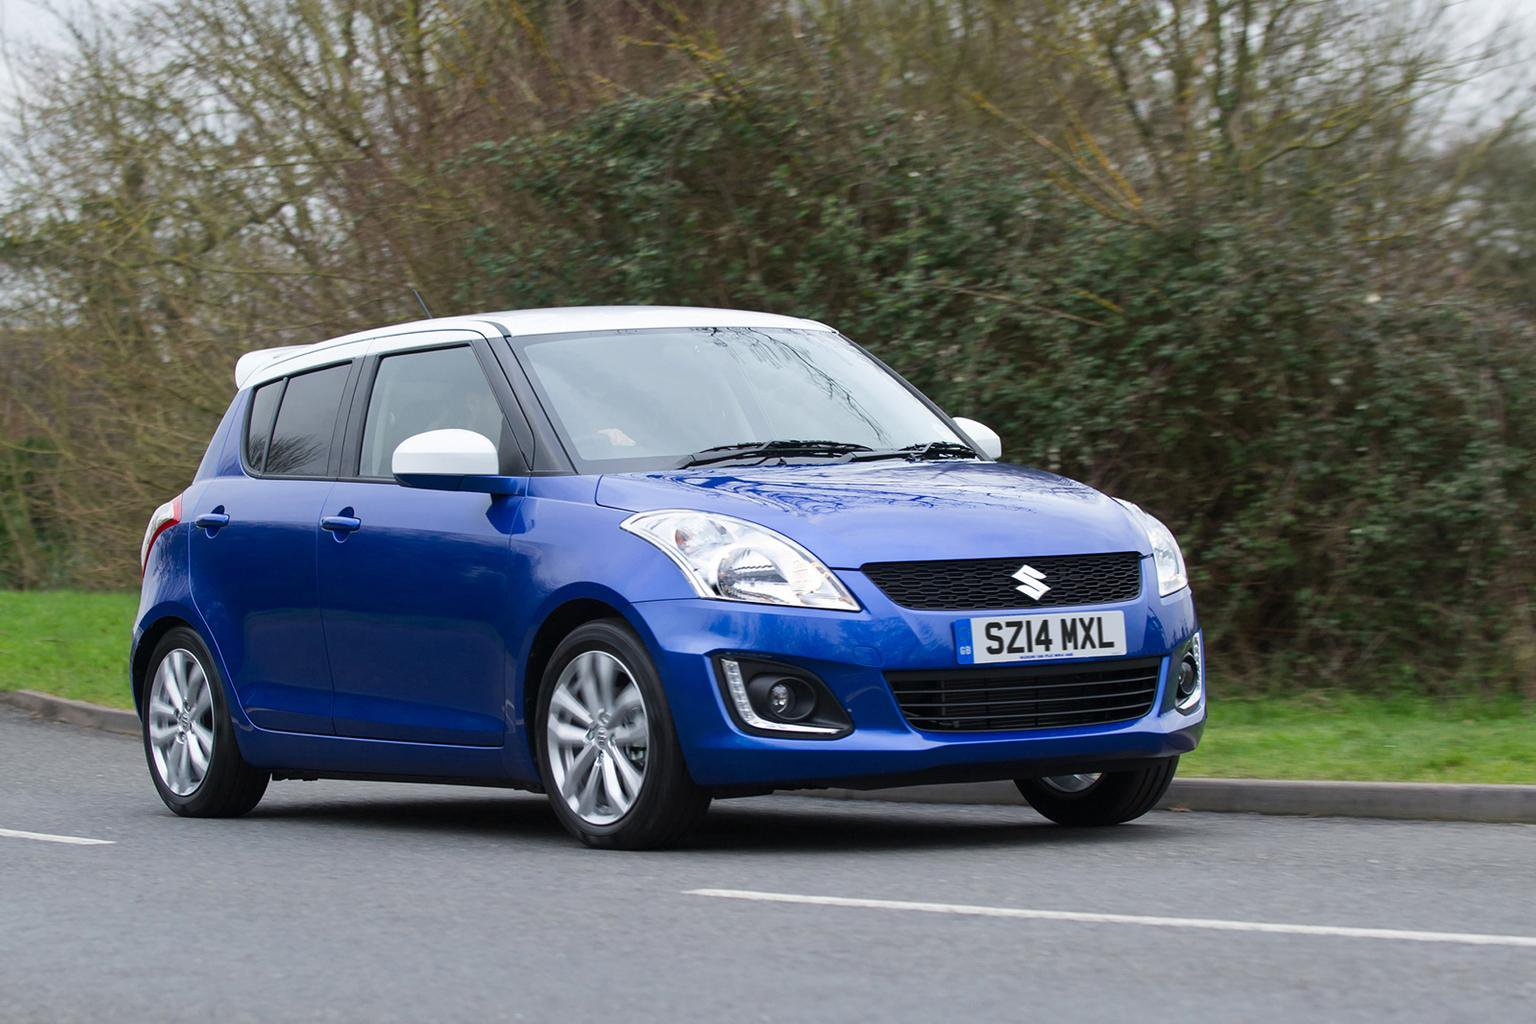 News round-up: Suzuki Swift edition re-released and insurance clarity sought